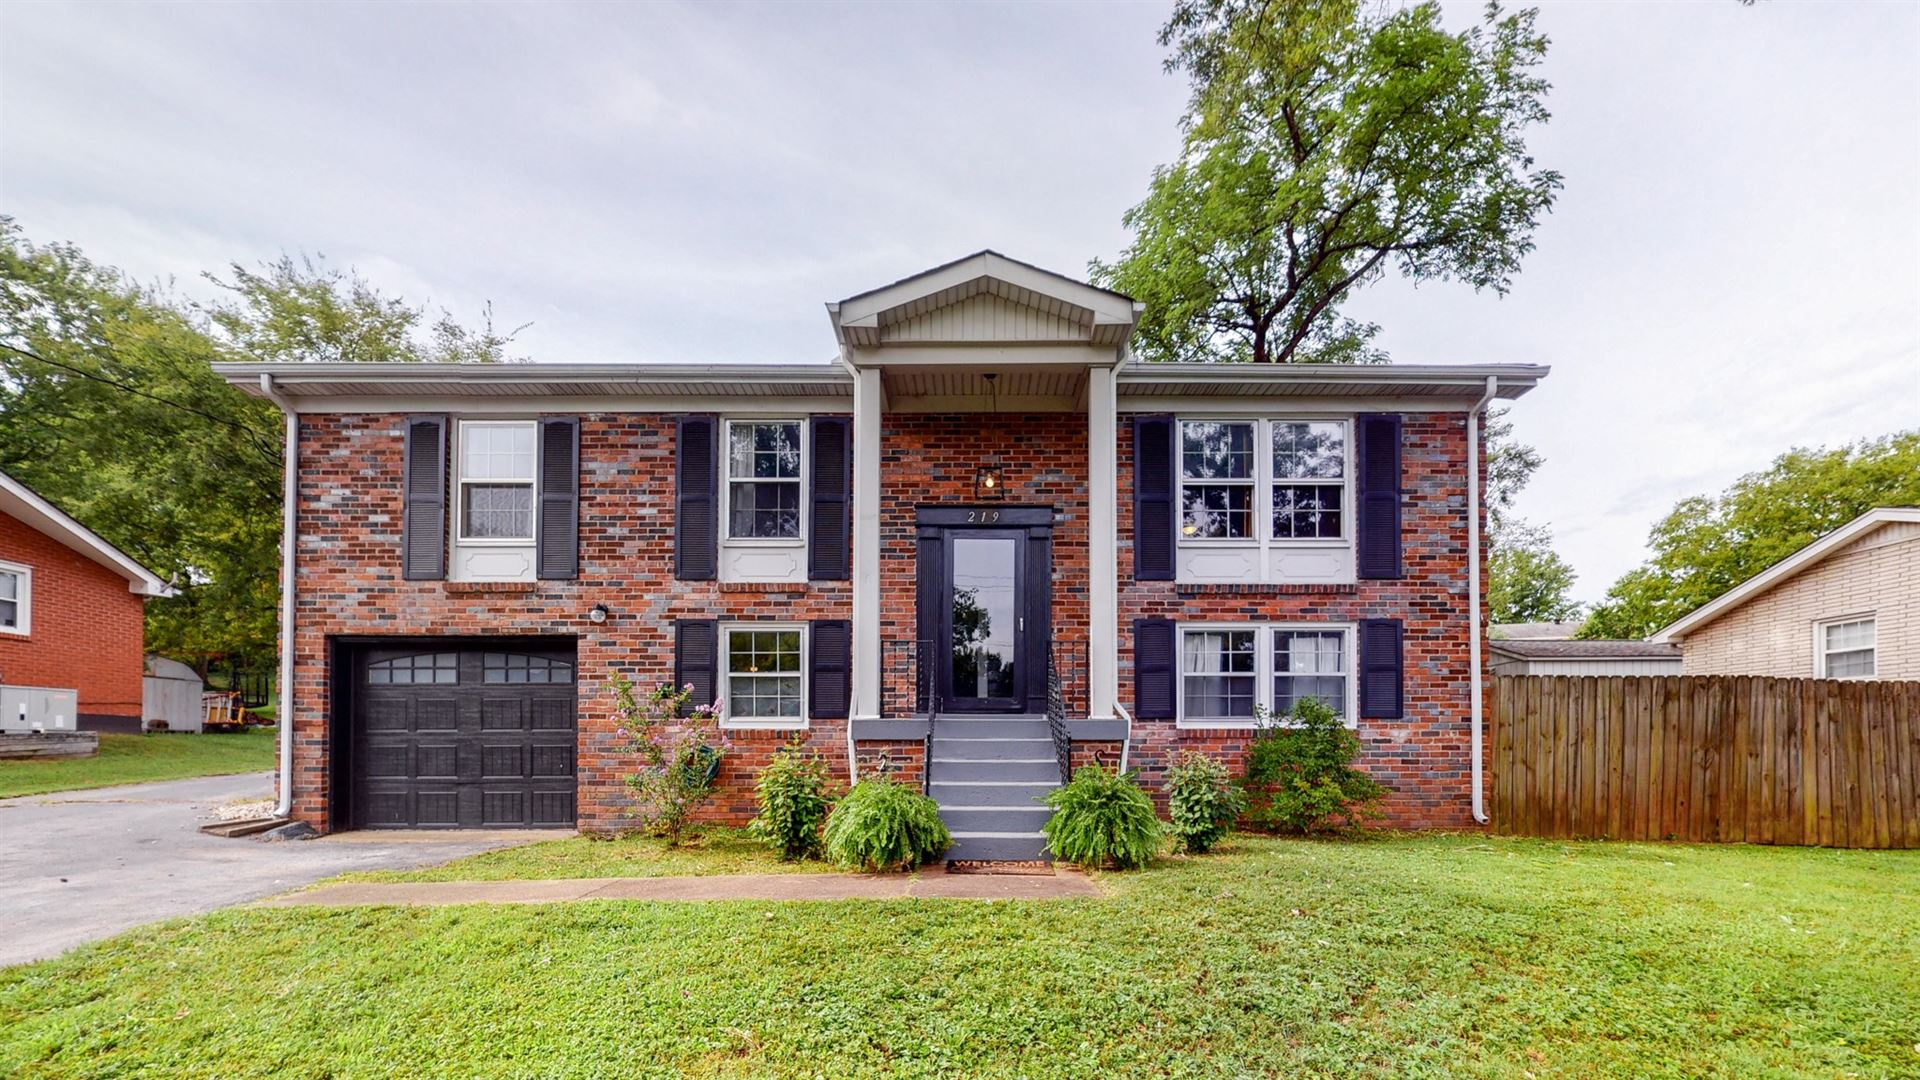 219 Bonnabrook Dr, Hermitage, TN 37076 - MLS#: 2176951